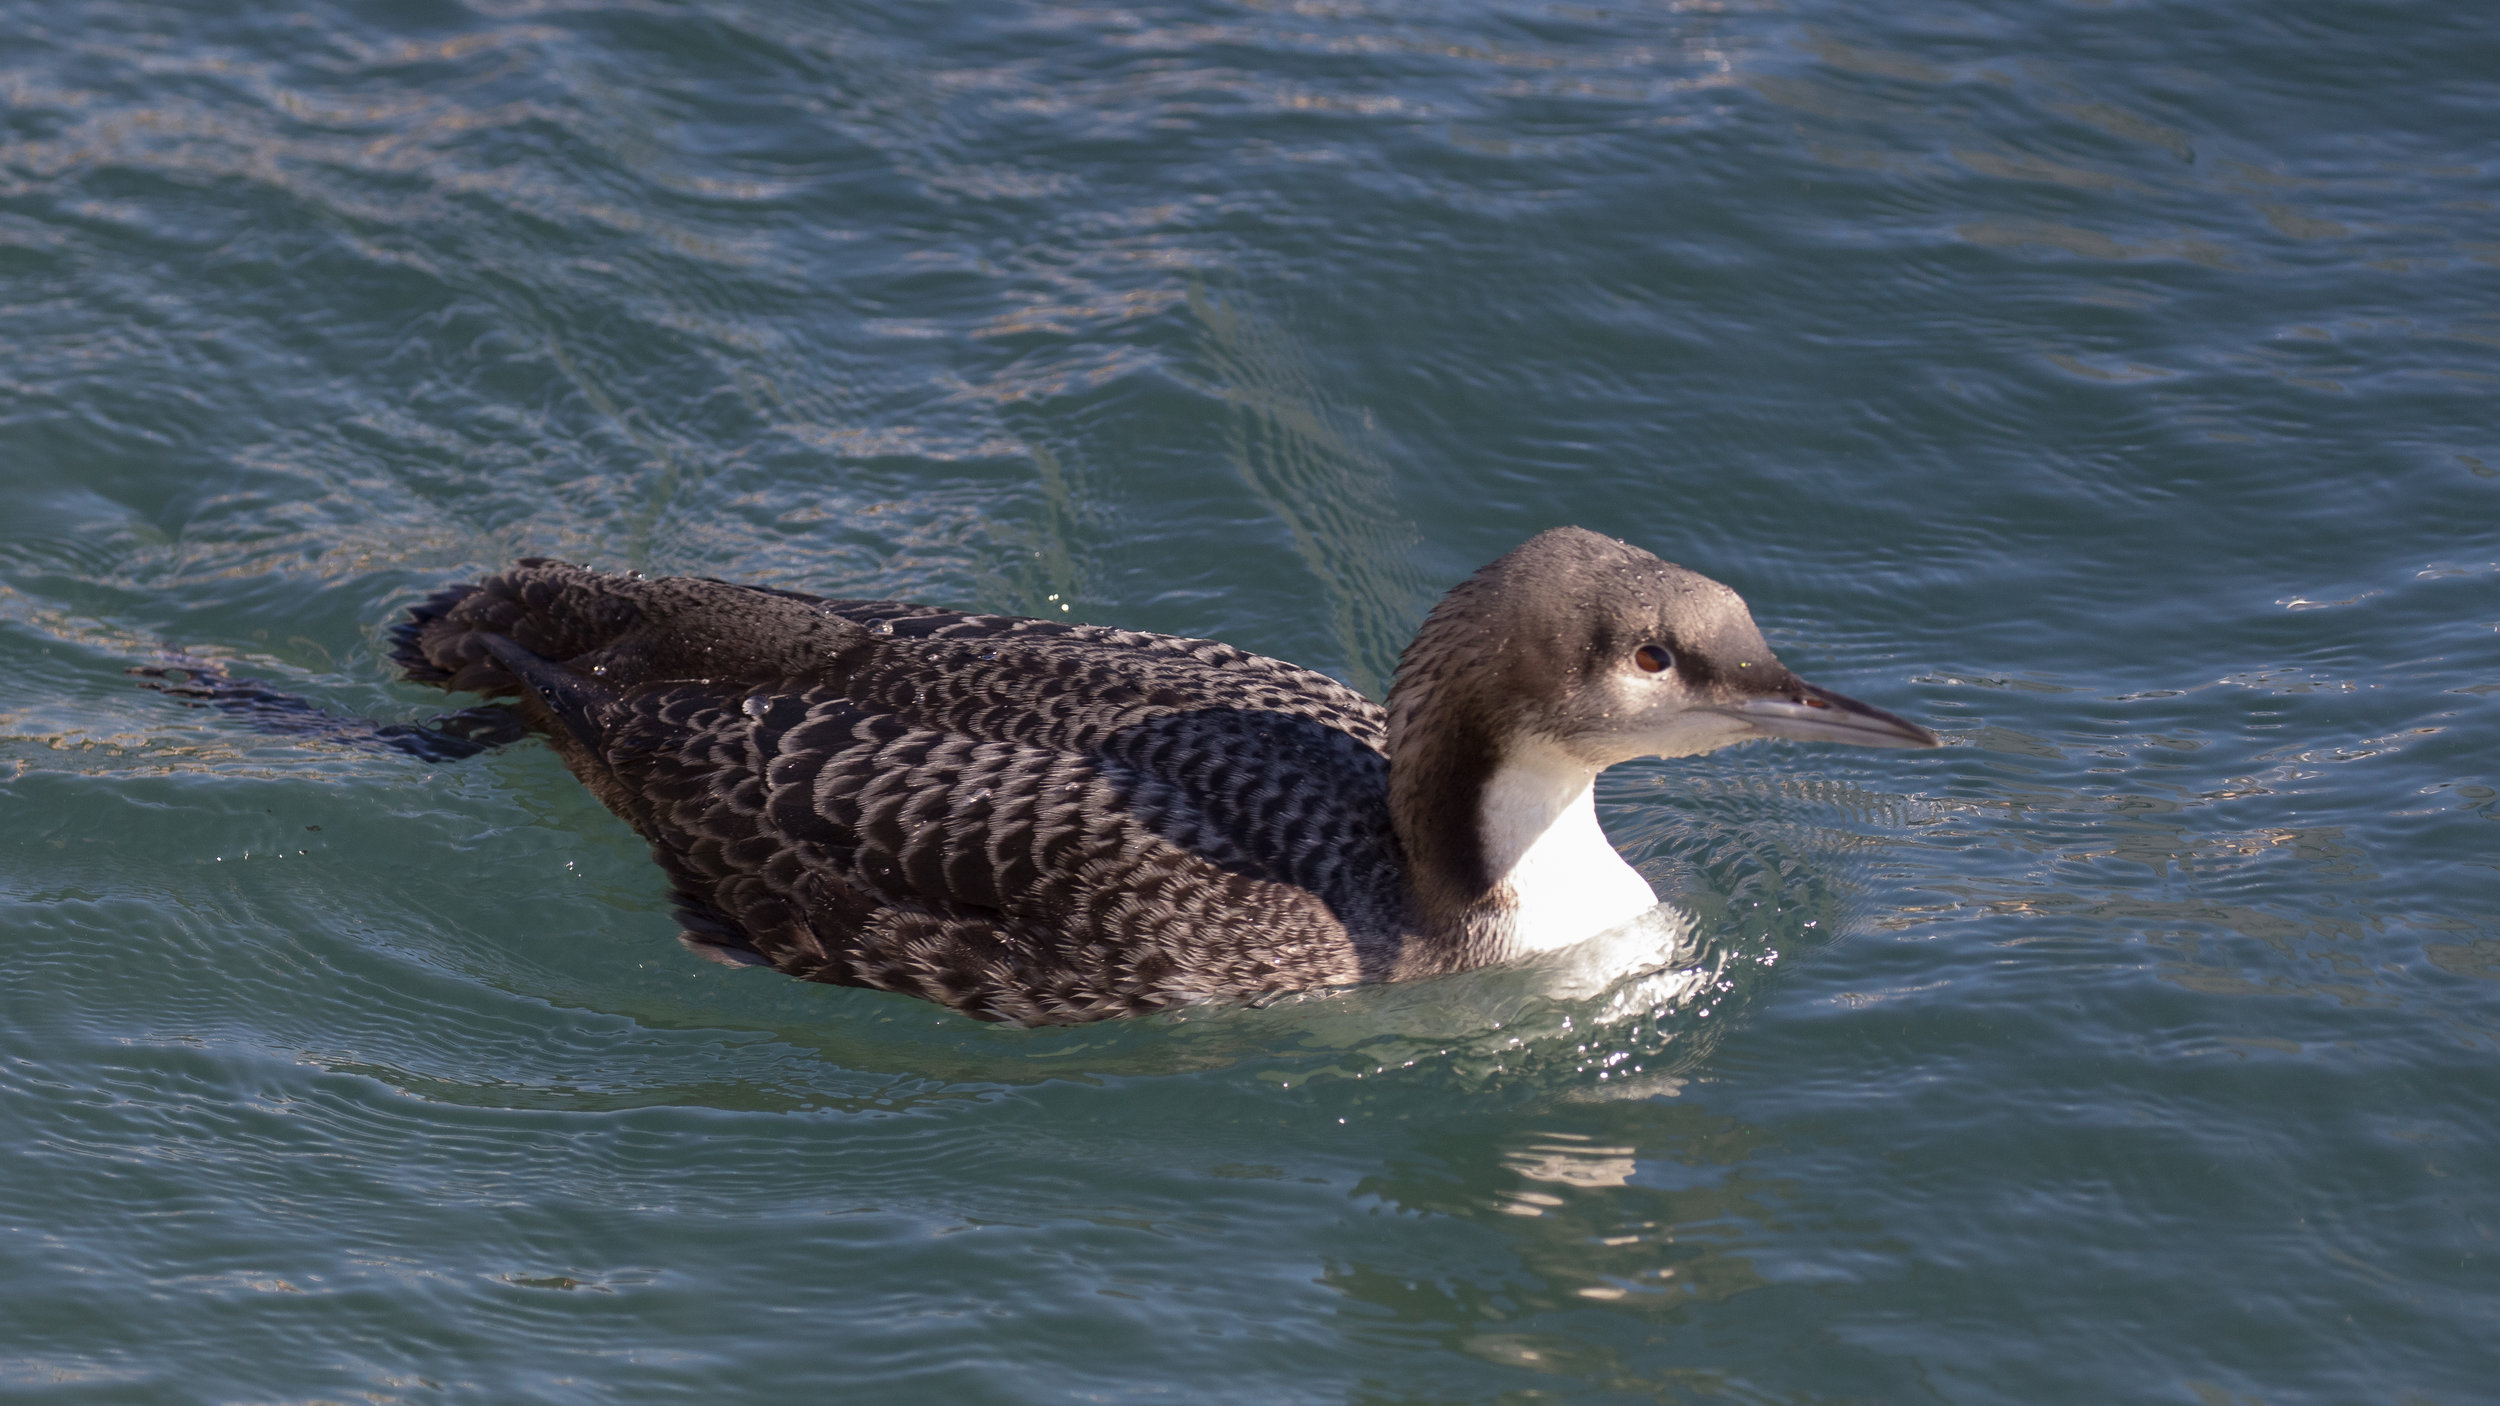 Pacific Loon (Gavia pacifica) in Dana Point, United States. December 2015. Not baited. Not called in.